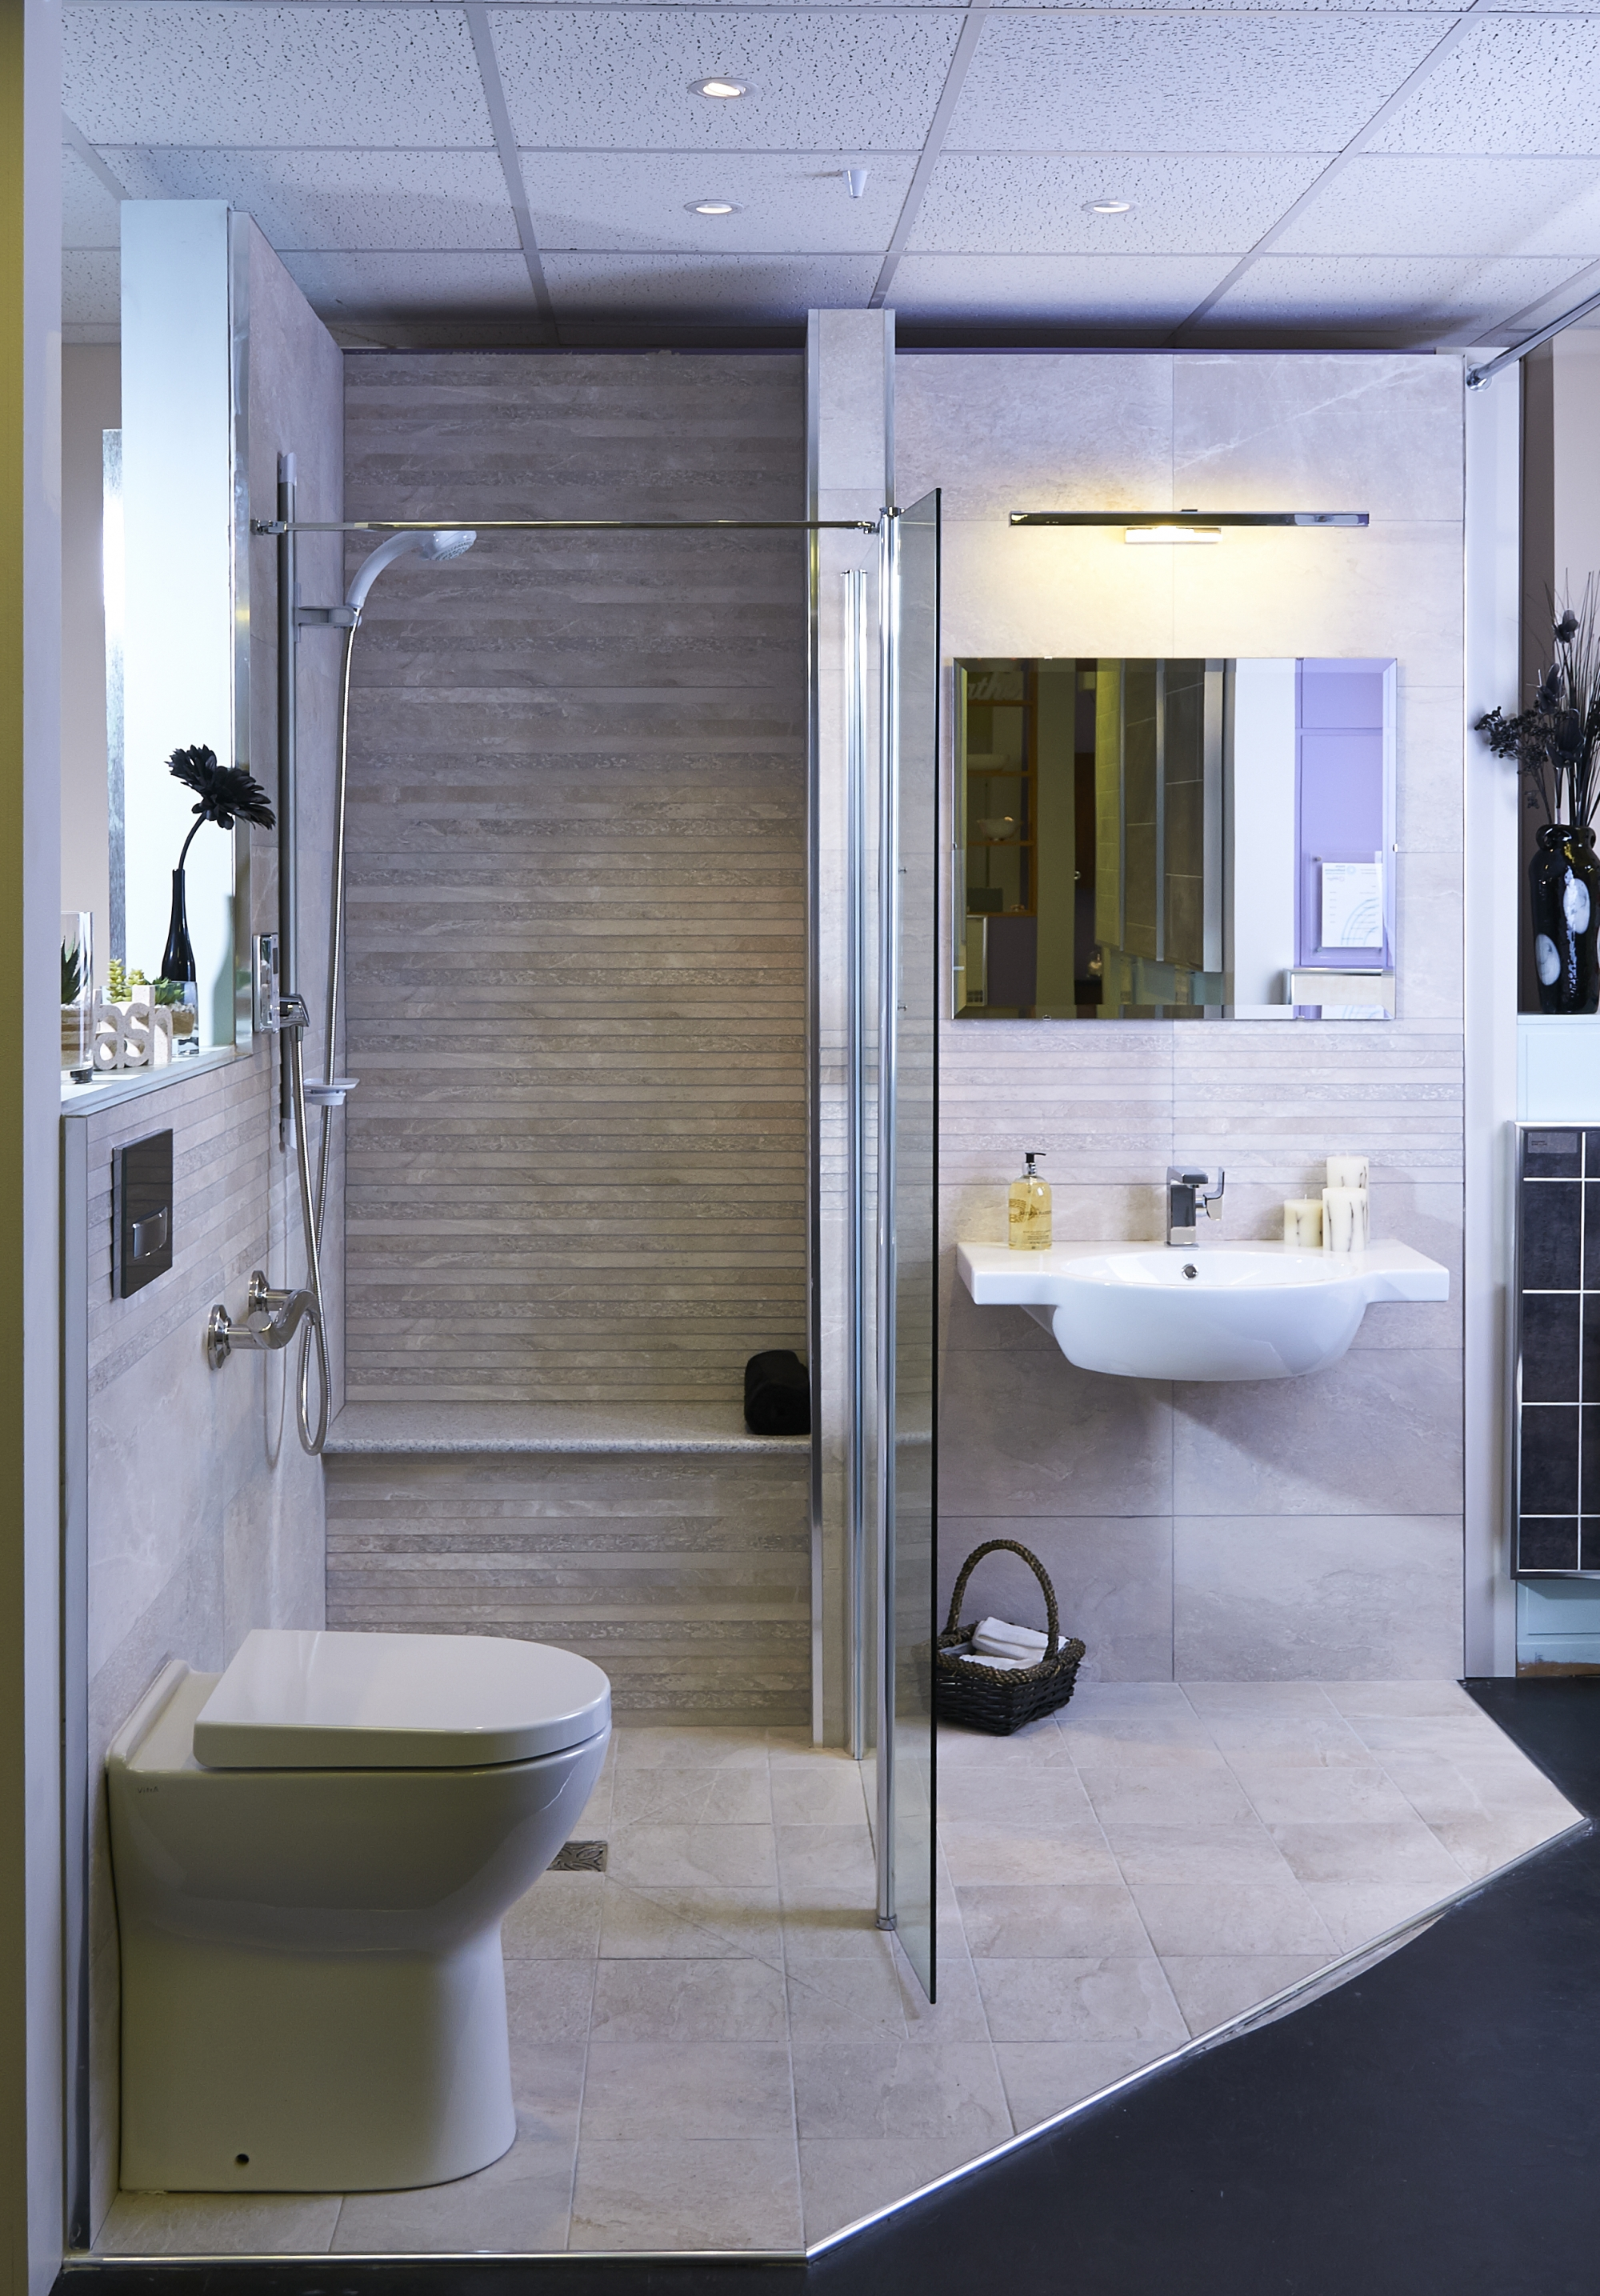 Help advice stylish easy access bath shower rooms - Disabled shower room ...